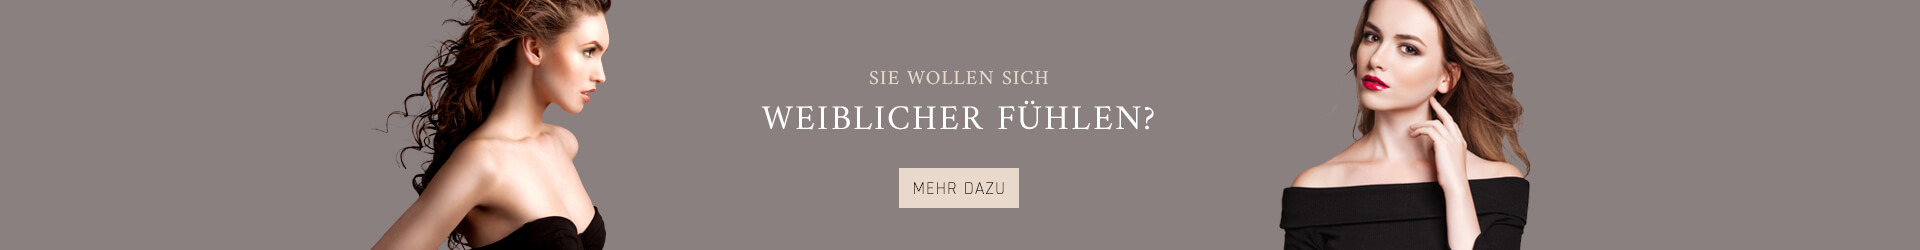 Weiblicher fühlen mit perfekter Brust, all about your breast